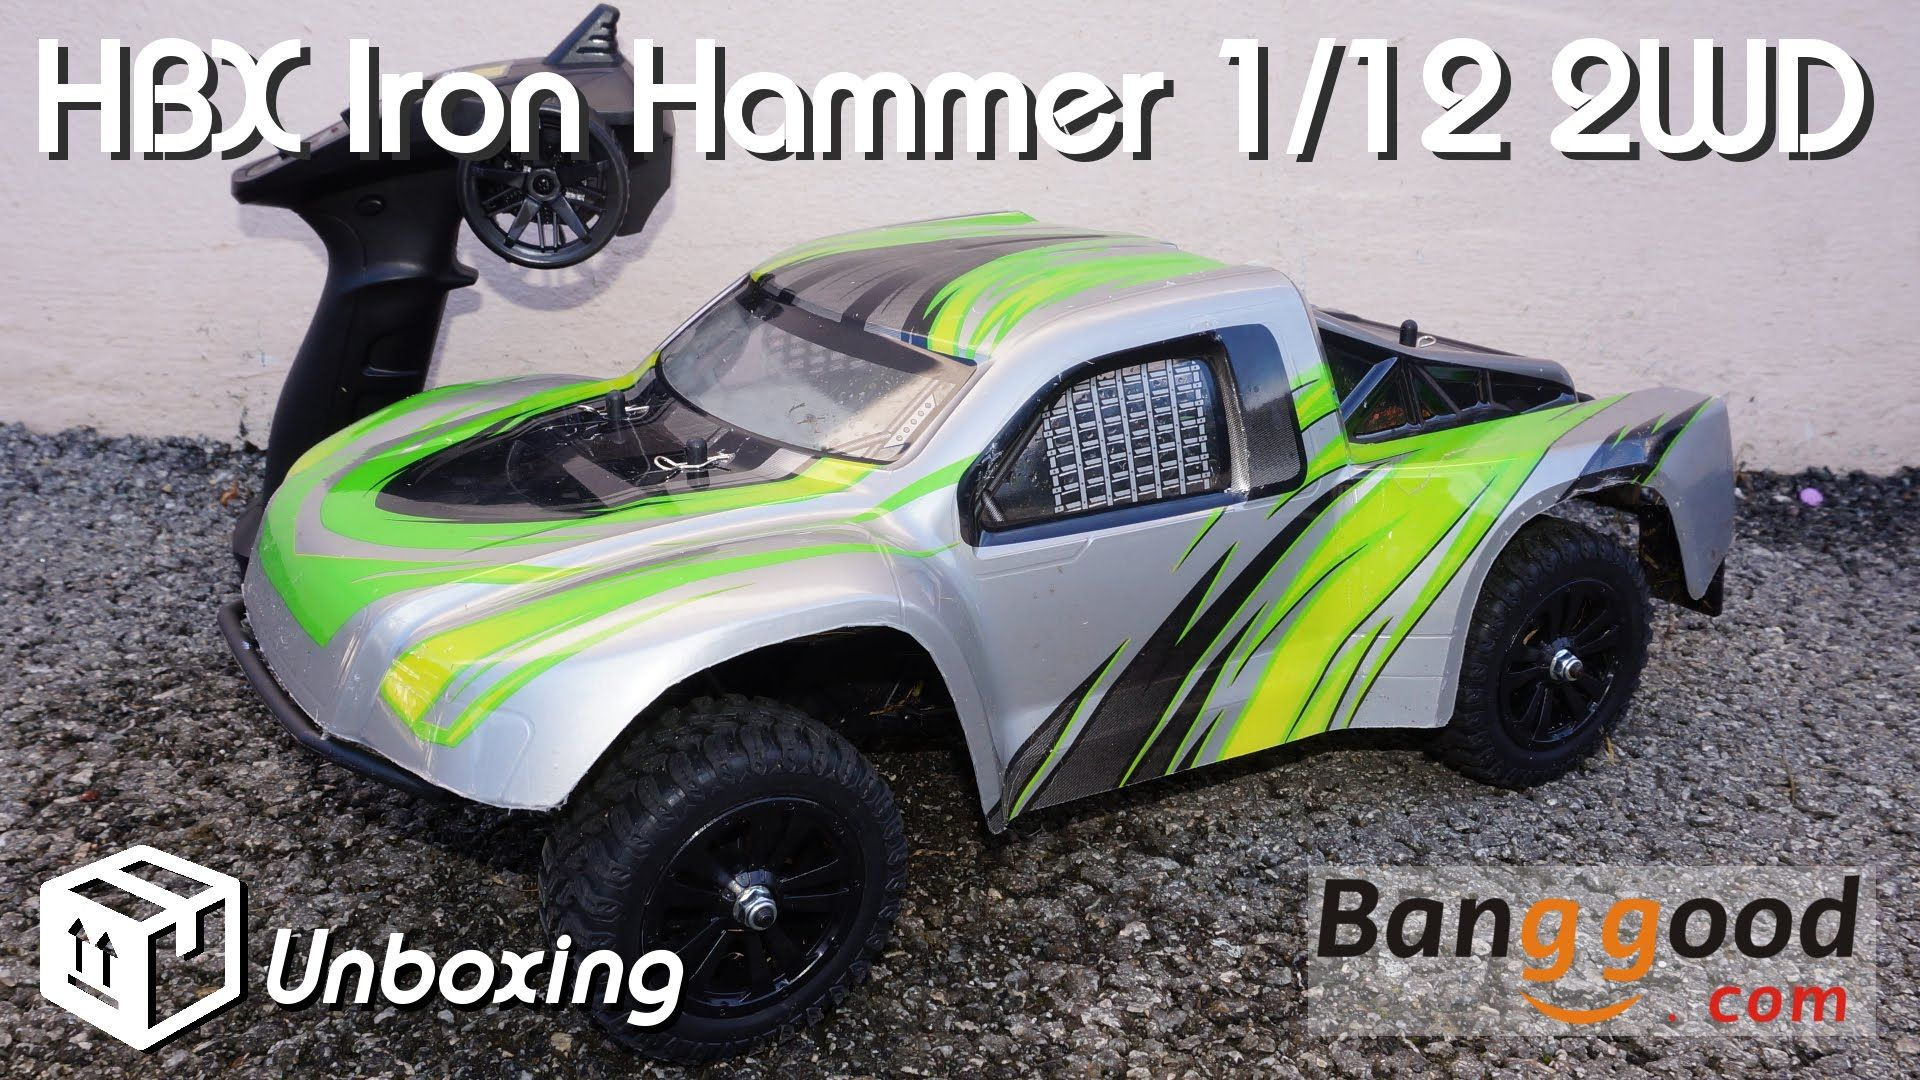 • HBX - IRON Hammer 1/12 2WD -  Unboxing •